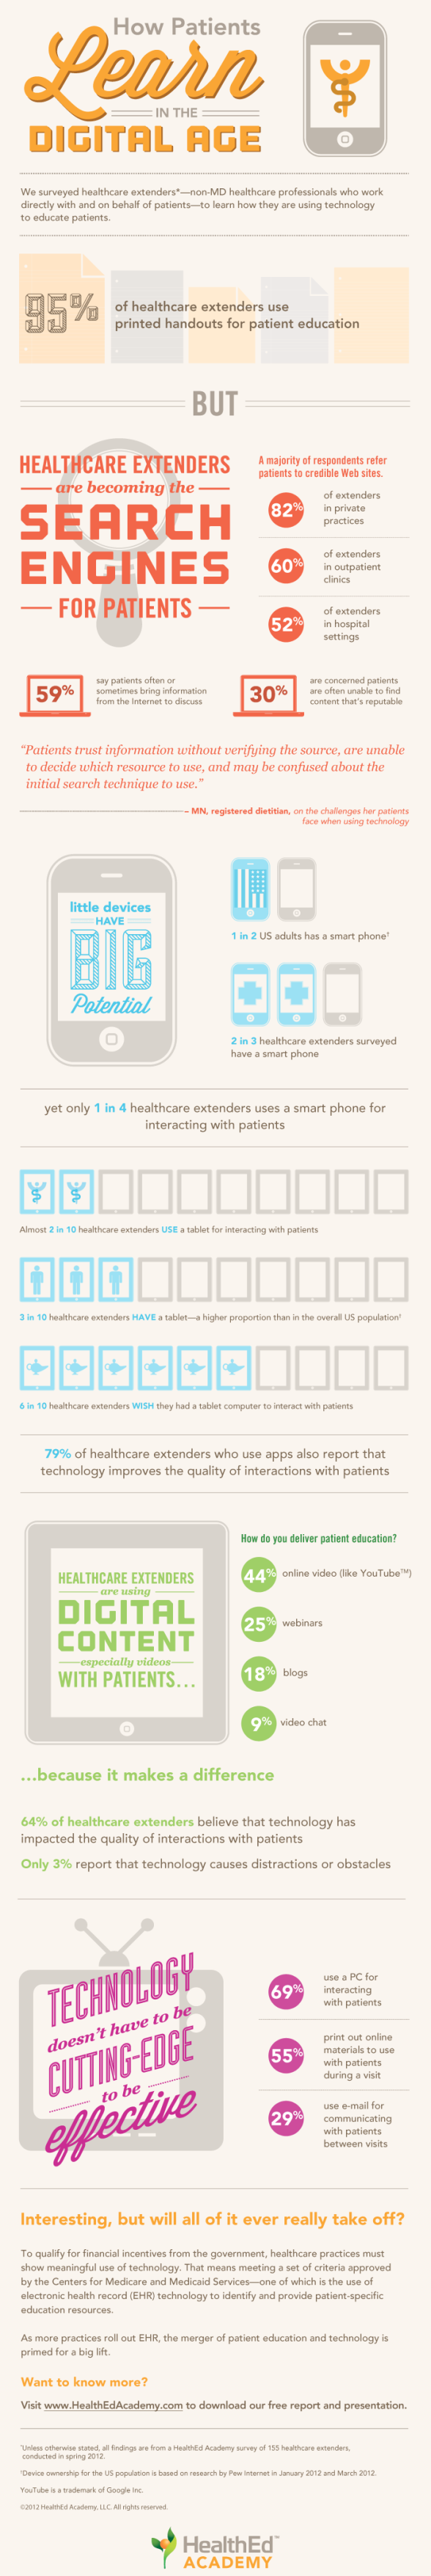 How-Patients-Learn-in-the-Digital-Age-Infographic-1